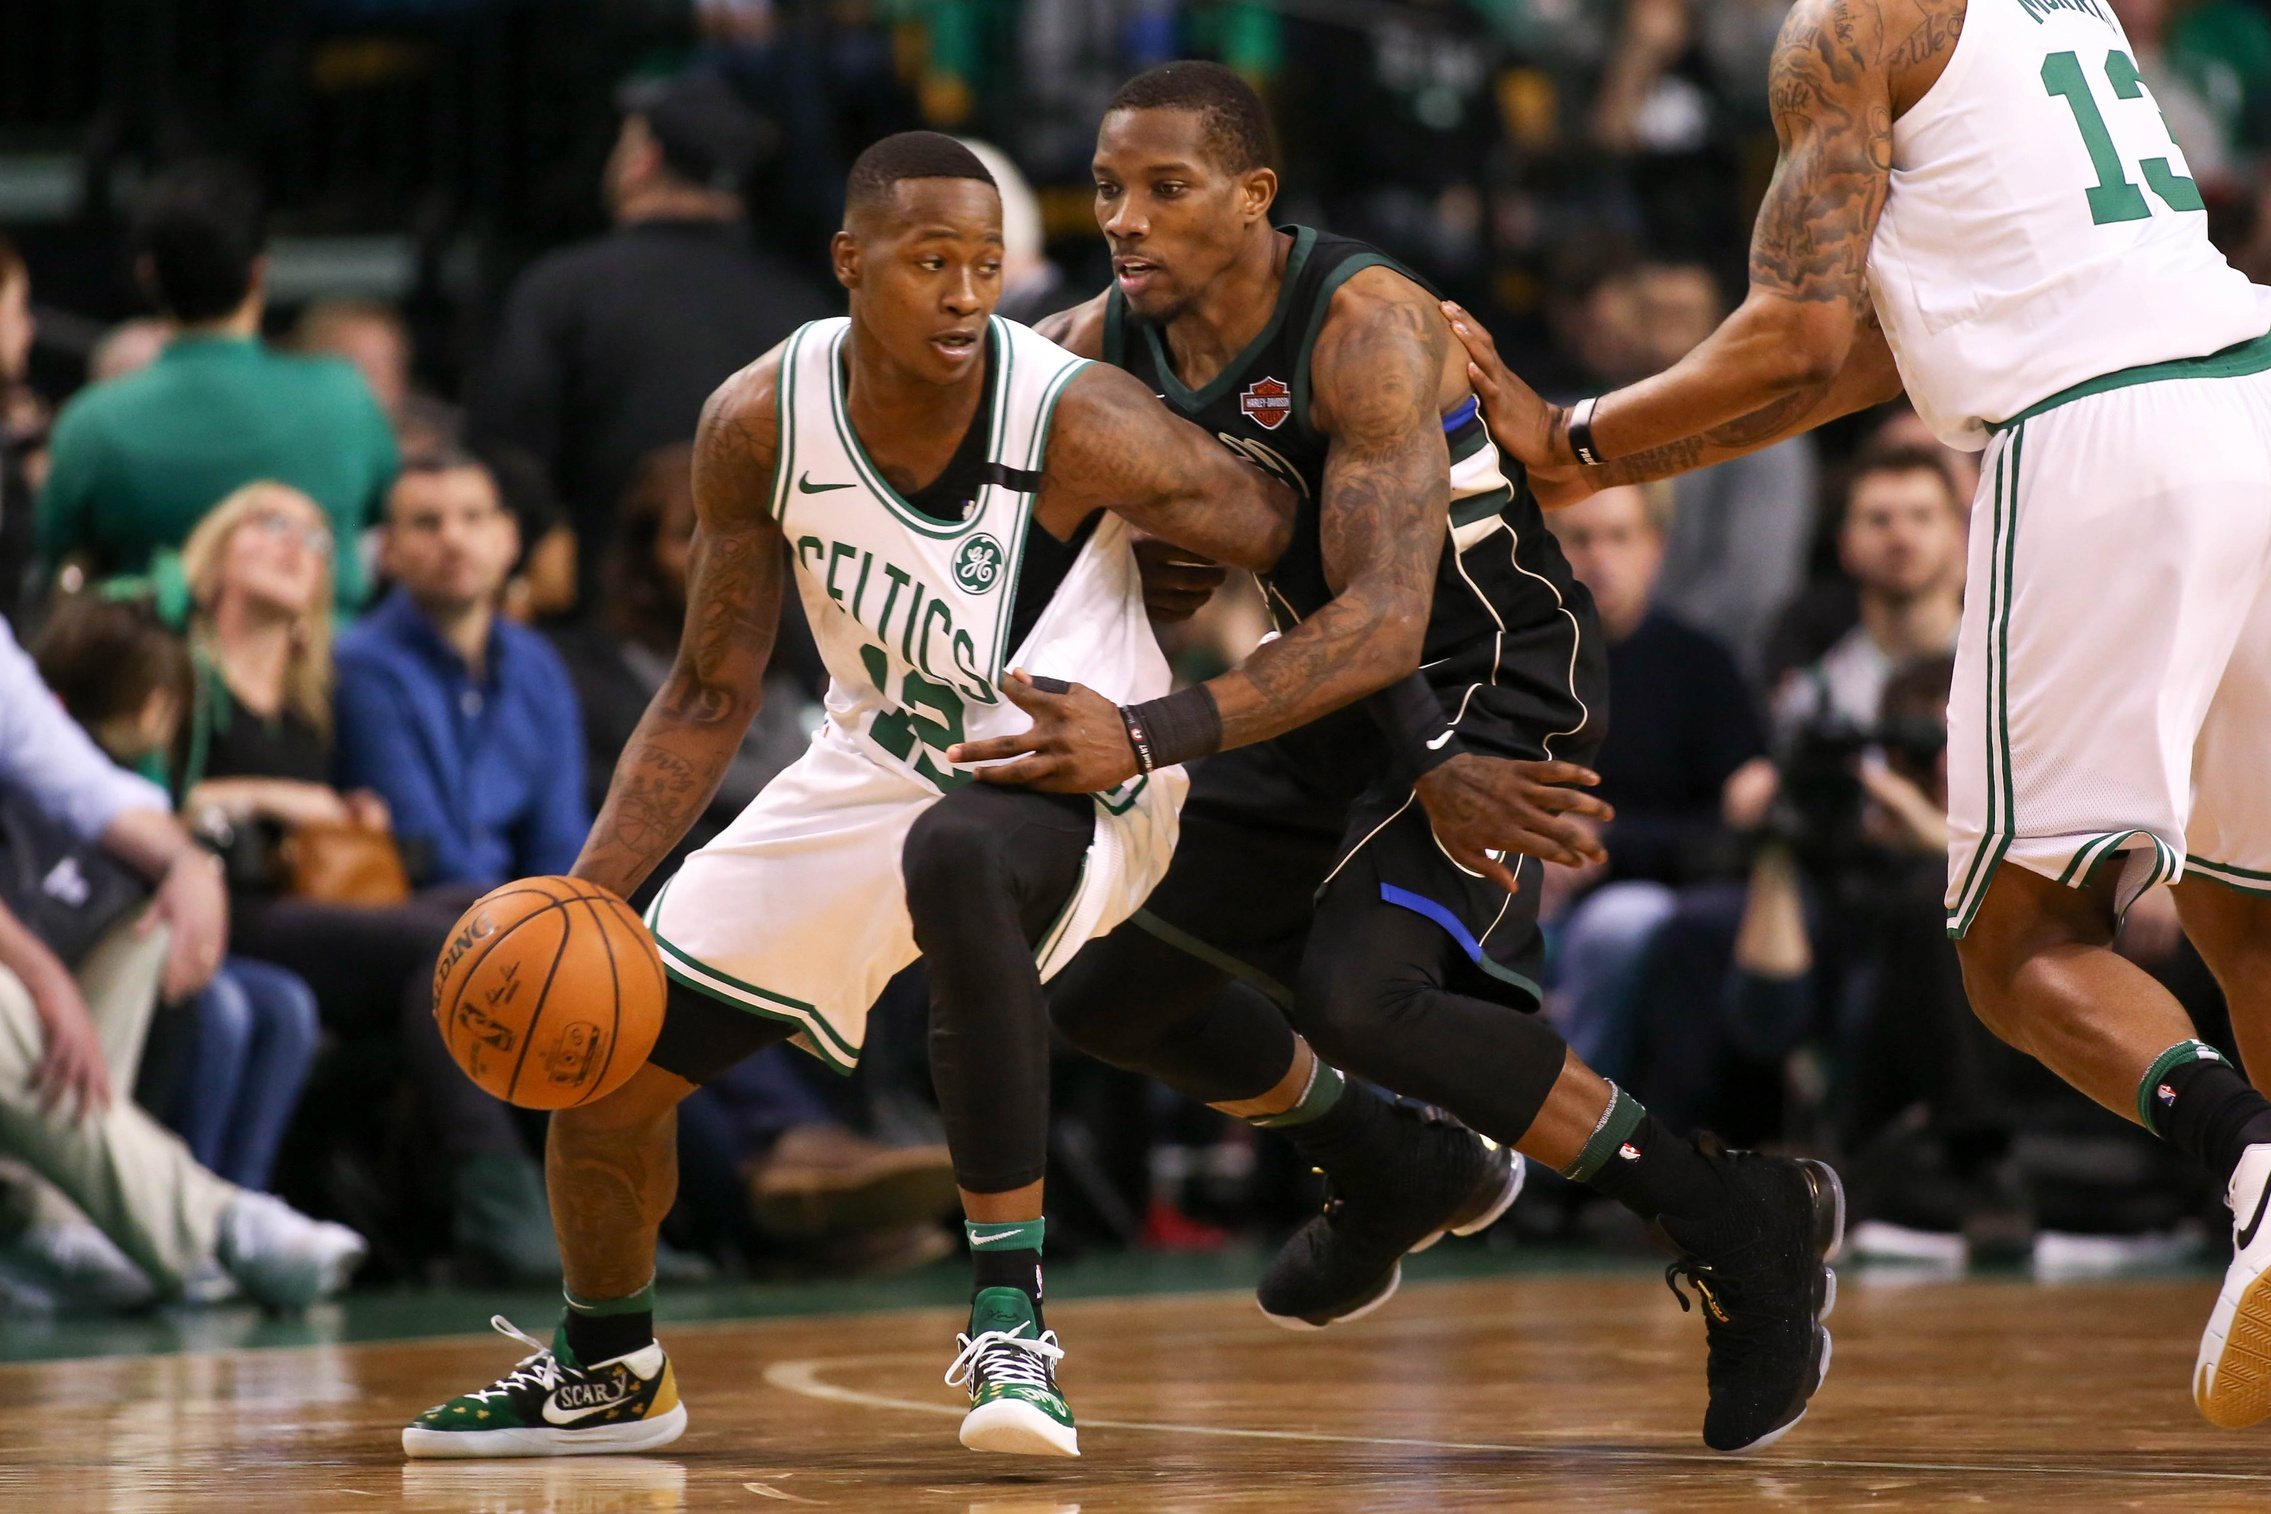 Burning Bledsoe: How Terry Rozier is dominating the crucial PG battle